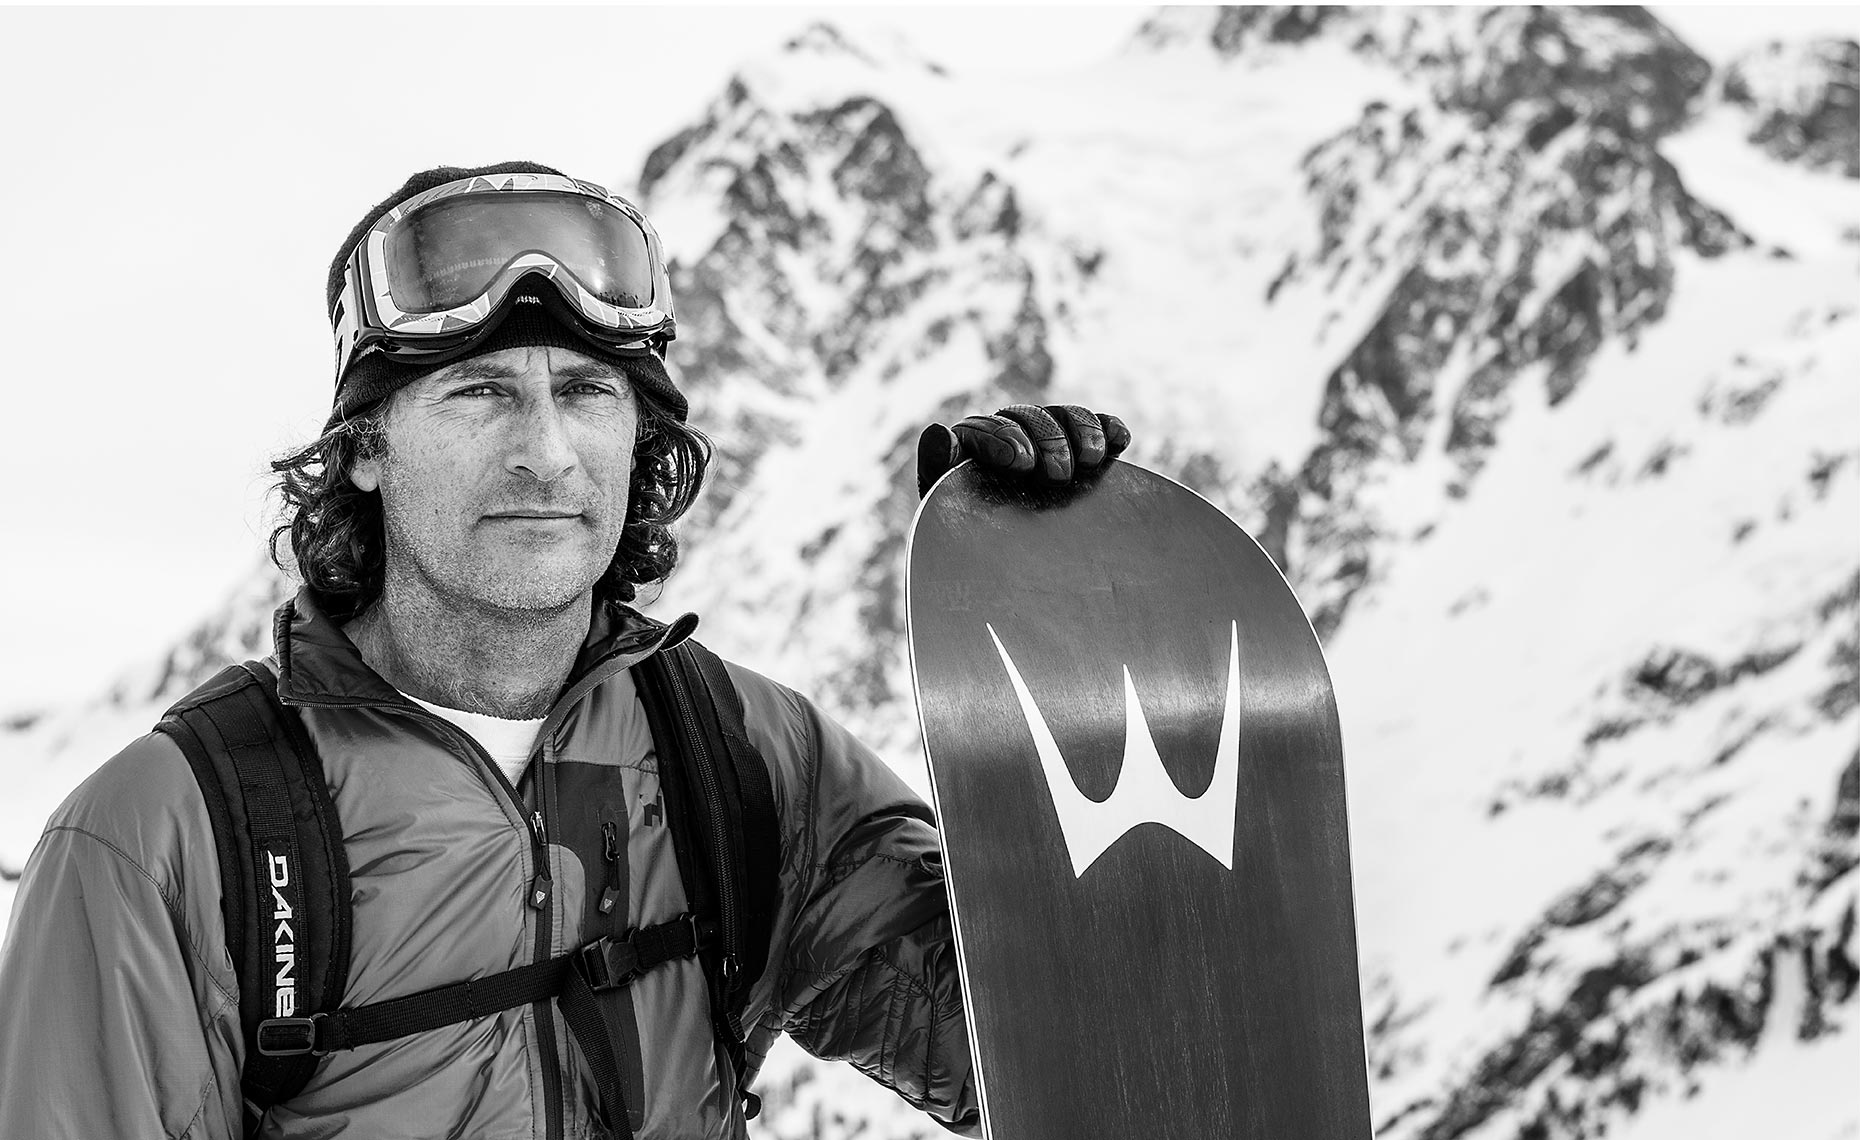 24_Tom_Burt_Mt_Baker_Portrait_Lifestyle_Chris_Wellhausen_Photography.JPG